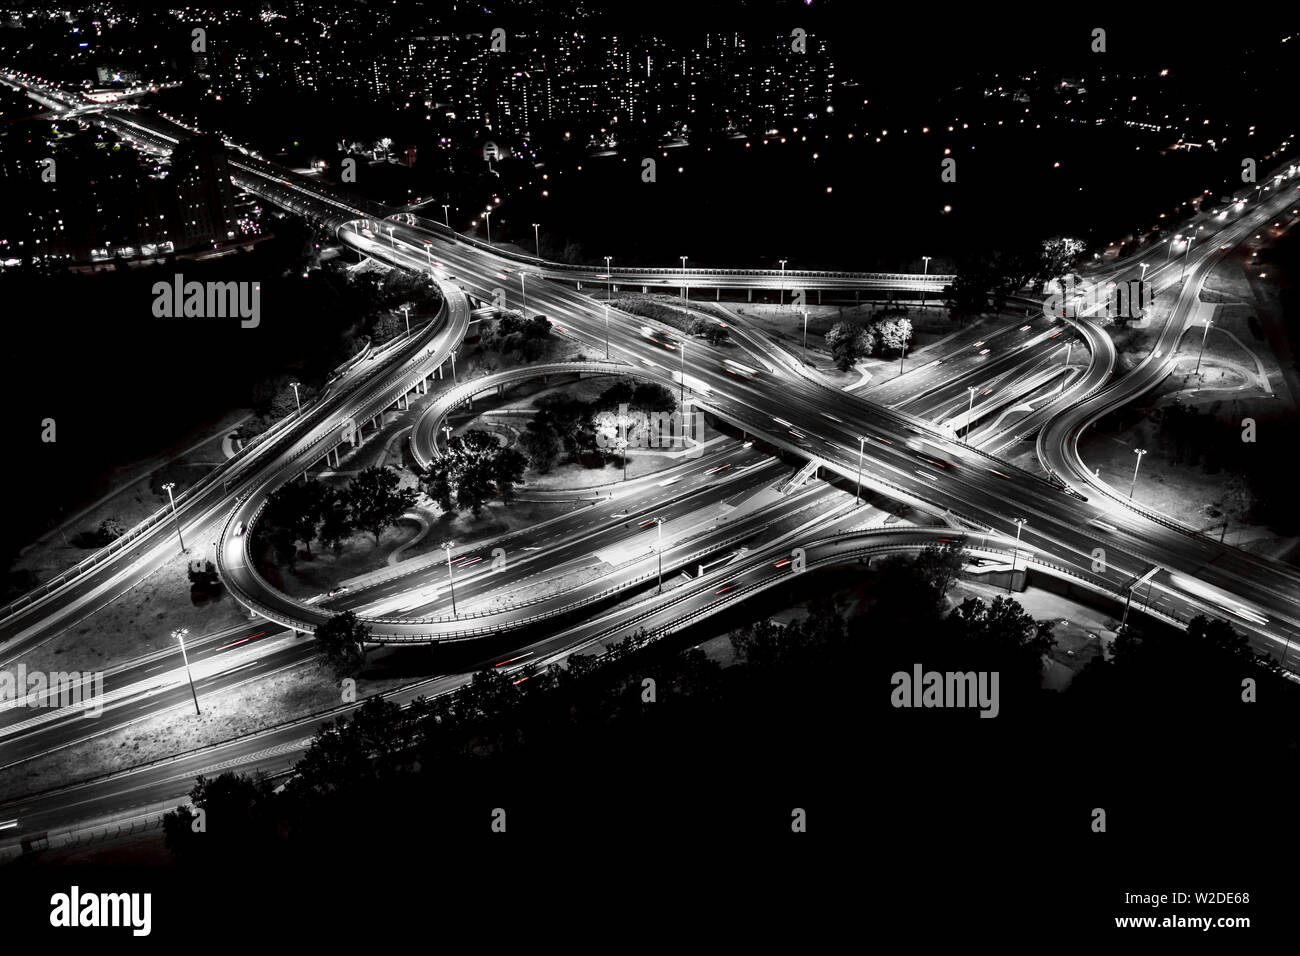 City interchange closeup at night , beautiful transport infrastructure background. Black and White. Aerial view - Stock Image